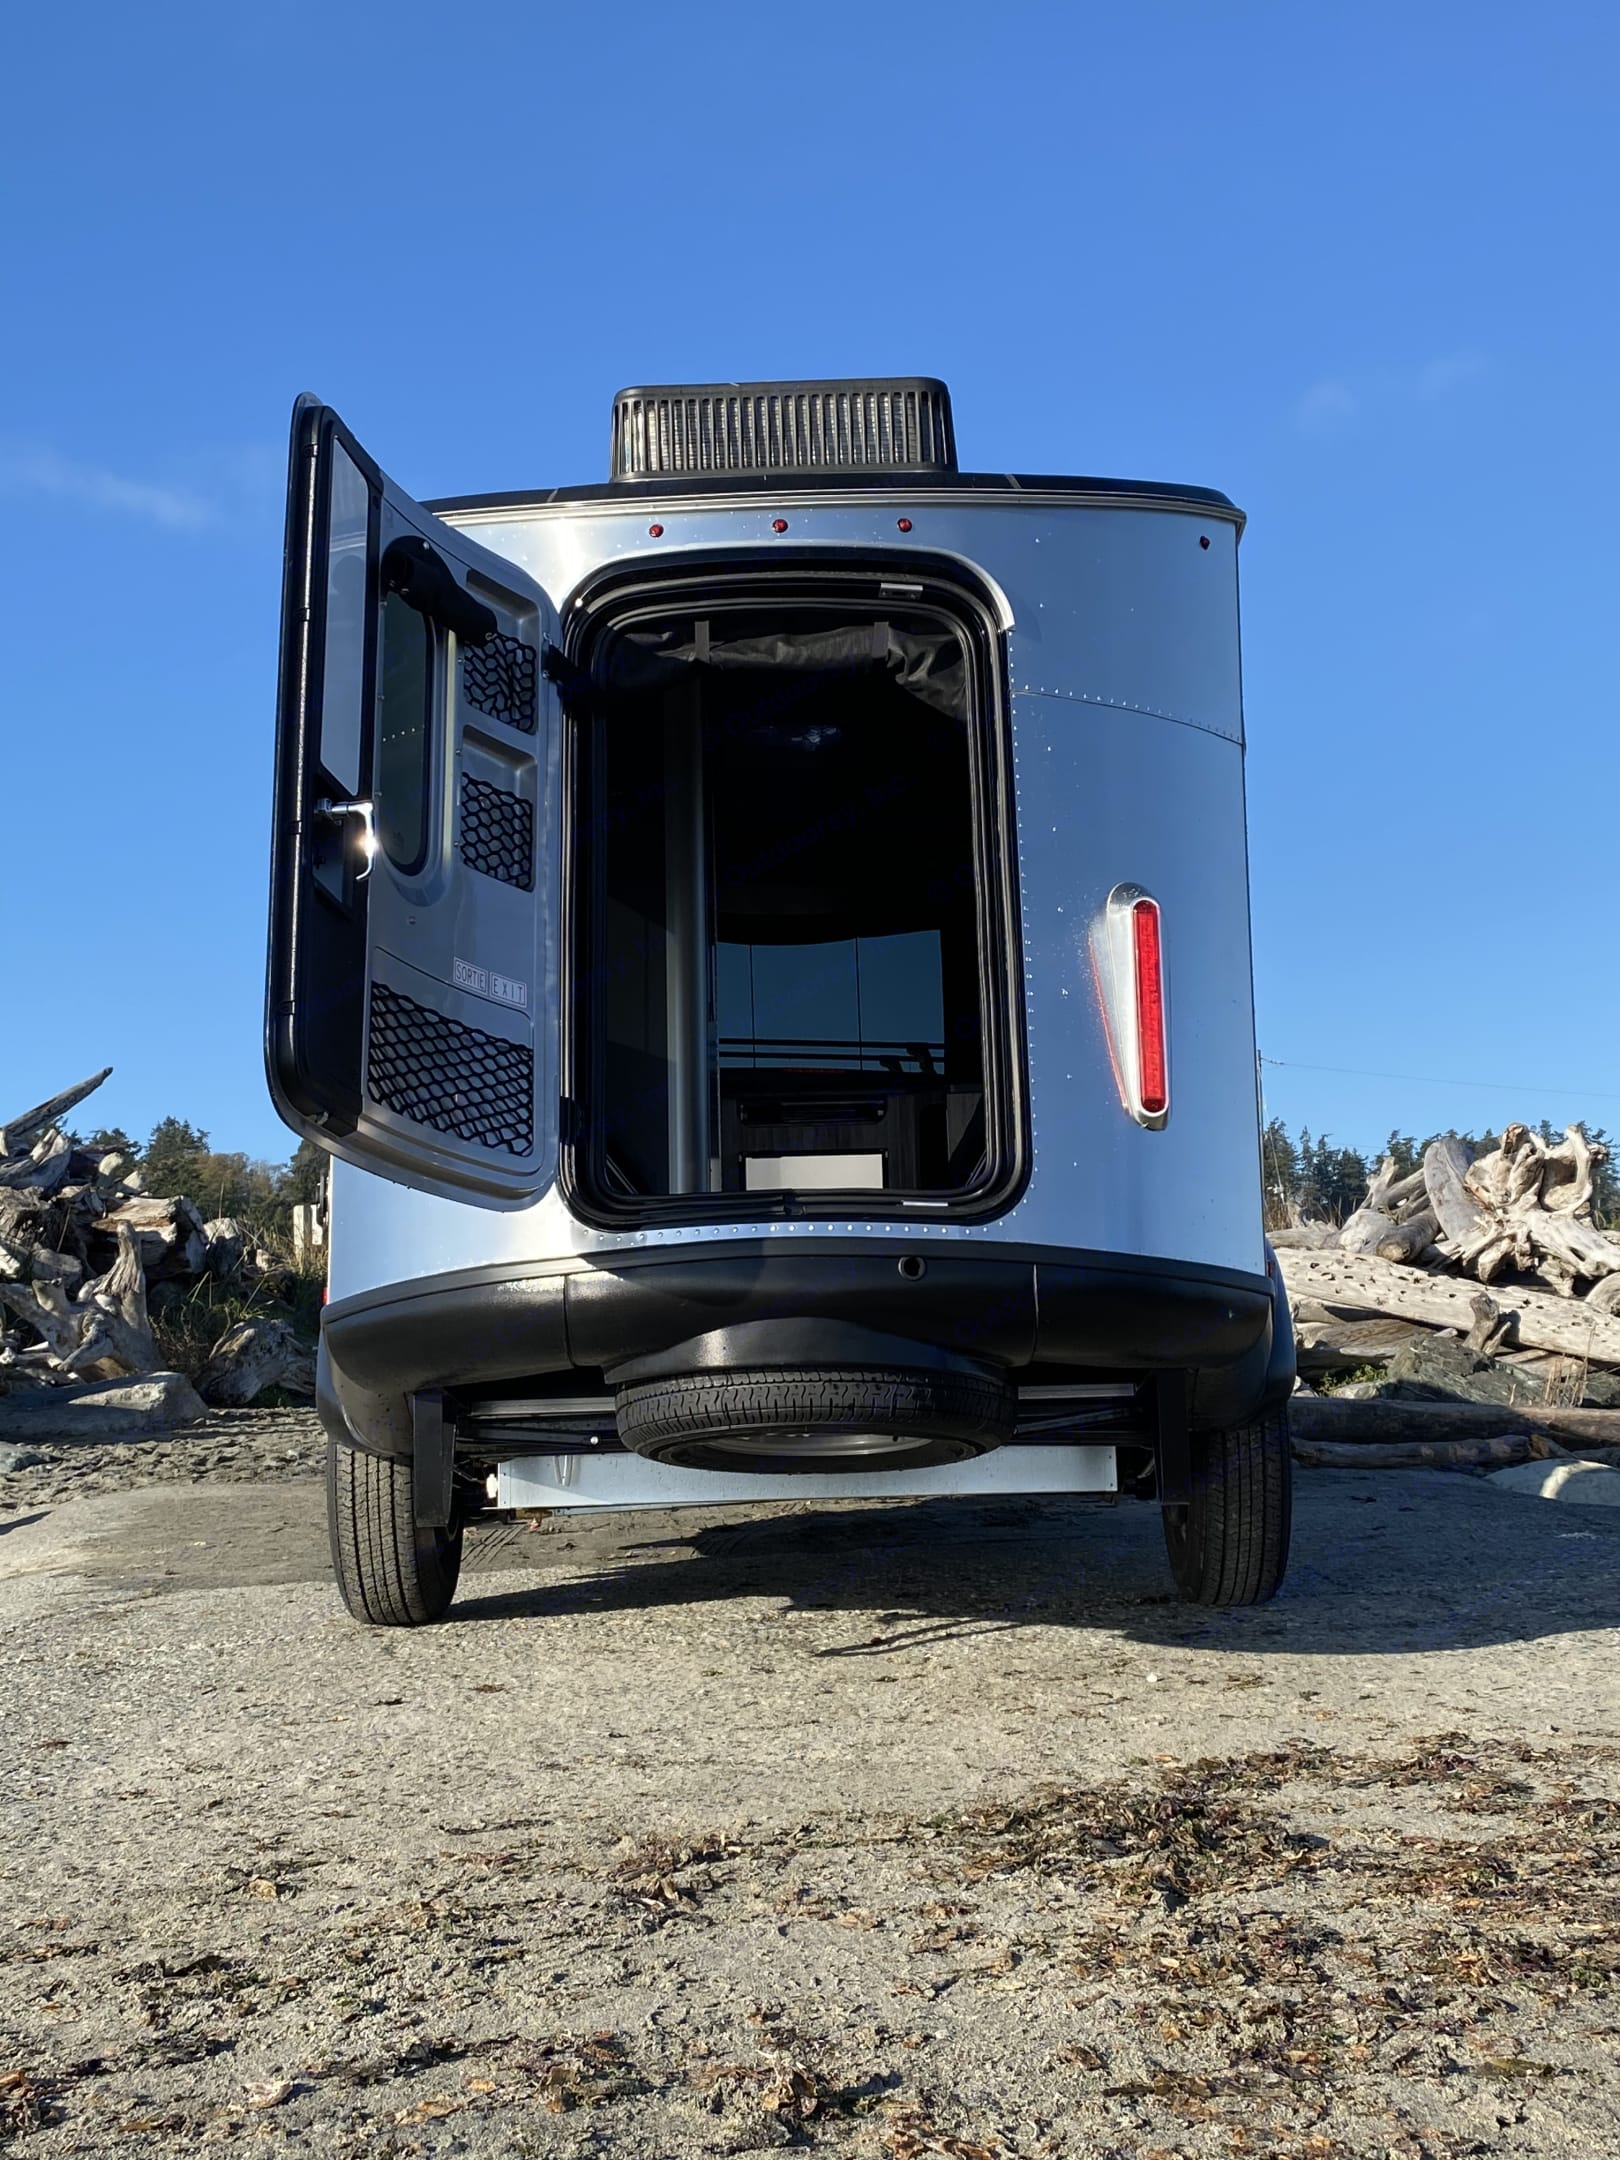 Rear cargo hatch for loading gear!. Airstream Base Camp 2021